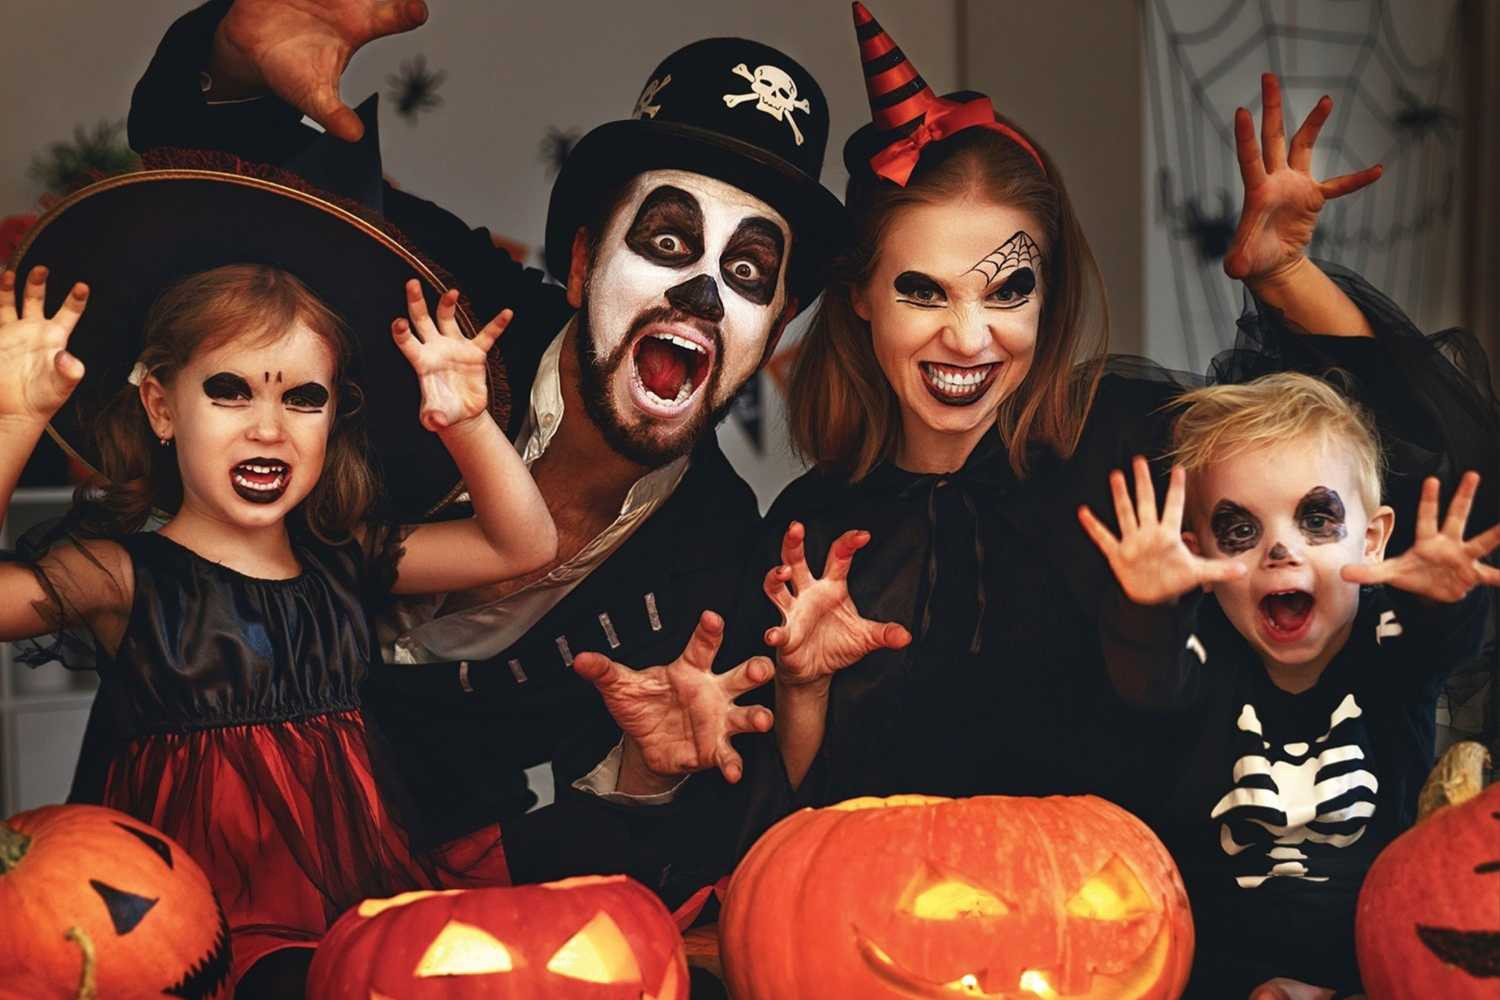 Childrens Halloween Events 2020 Tyler Texas EGuideMagazine.com: Things To Do in Tyler TX: Events, Music, Festivals